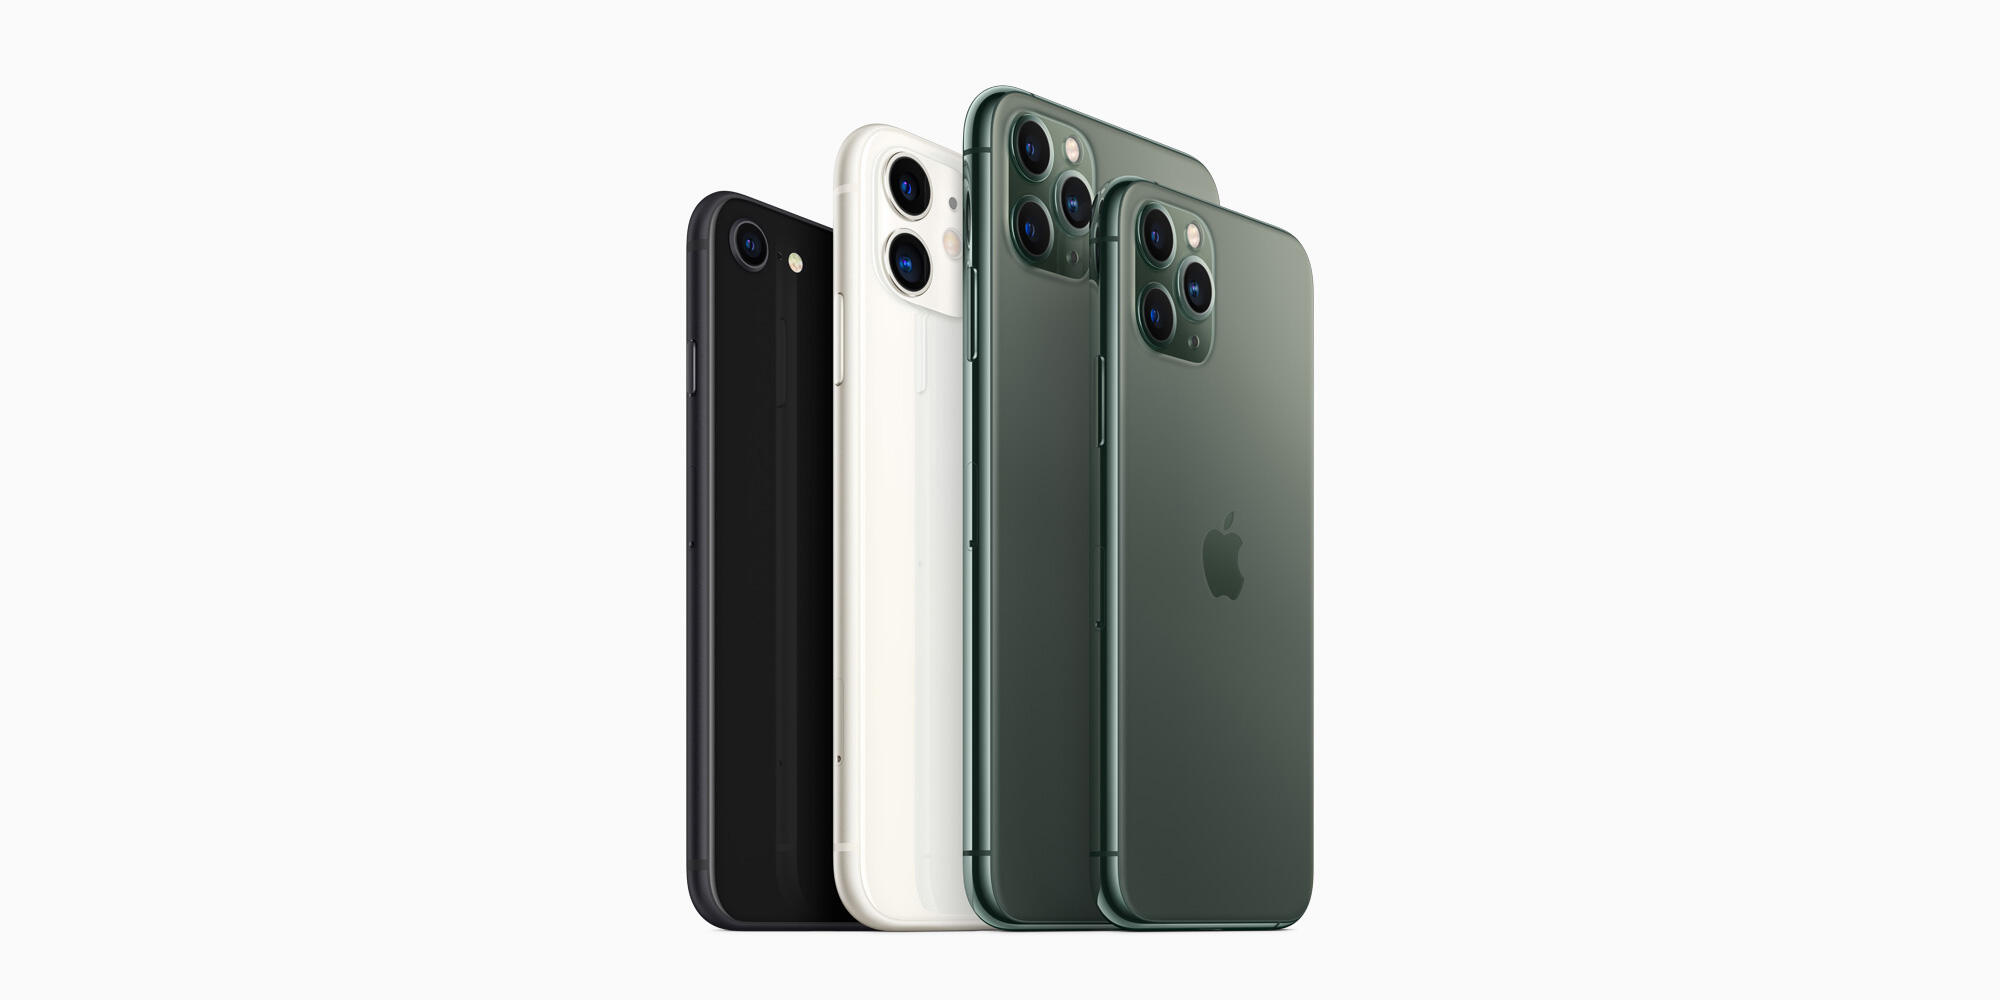 iphone-se-blk-iphone-11-offwht-iphone-11-promax-drkgrn-iphone-11-pro-drkgrn-family-twitter